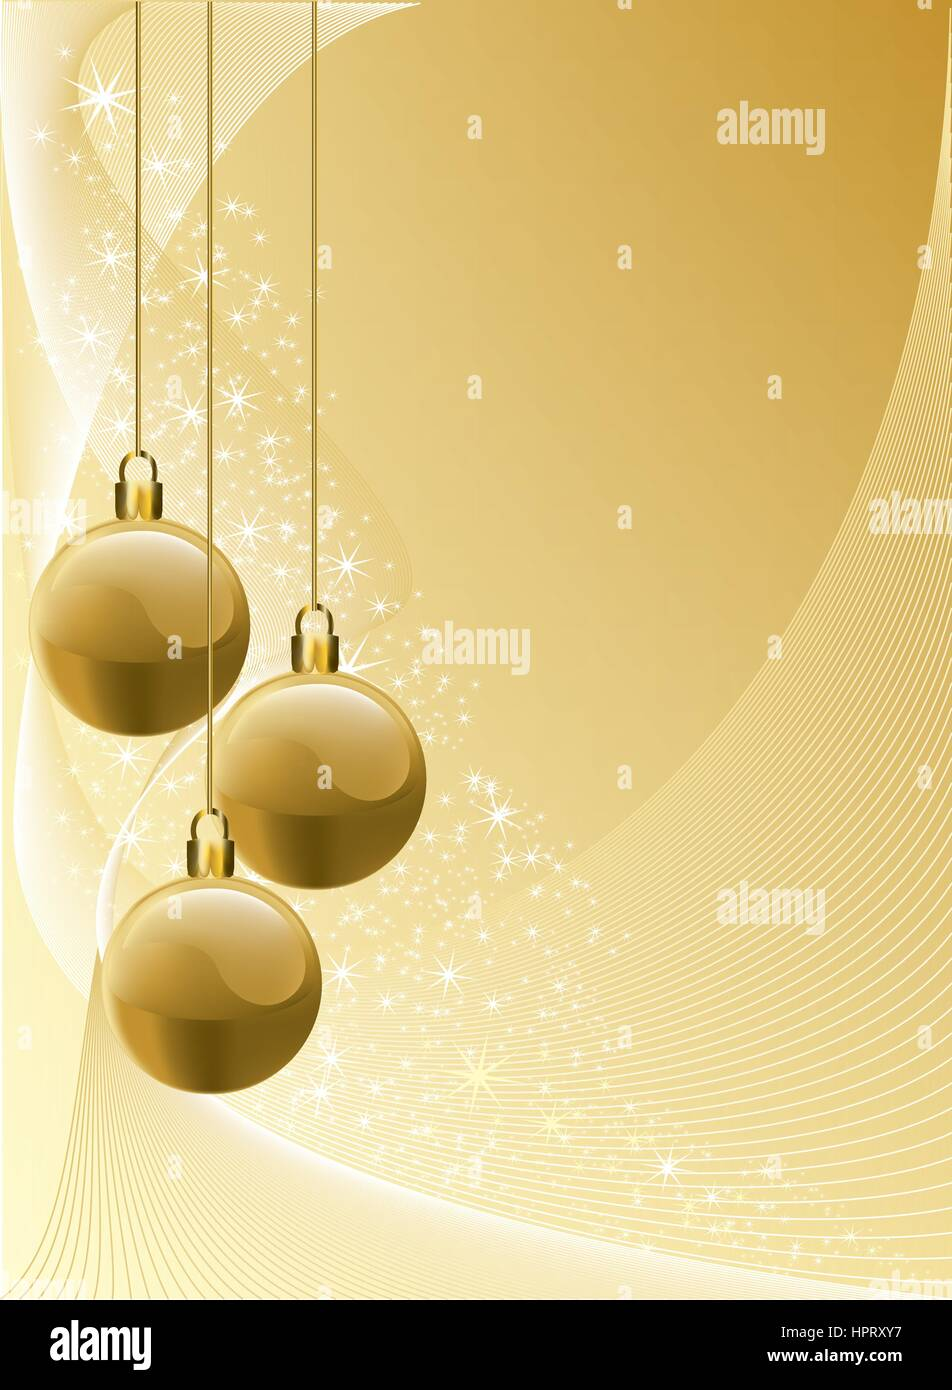 Christmas theme with gold, red and silver baubles, bright stars on blue background. Stock Vector